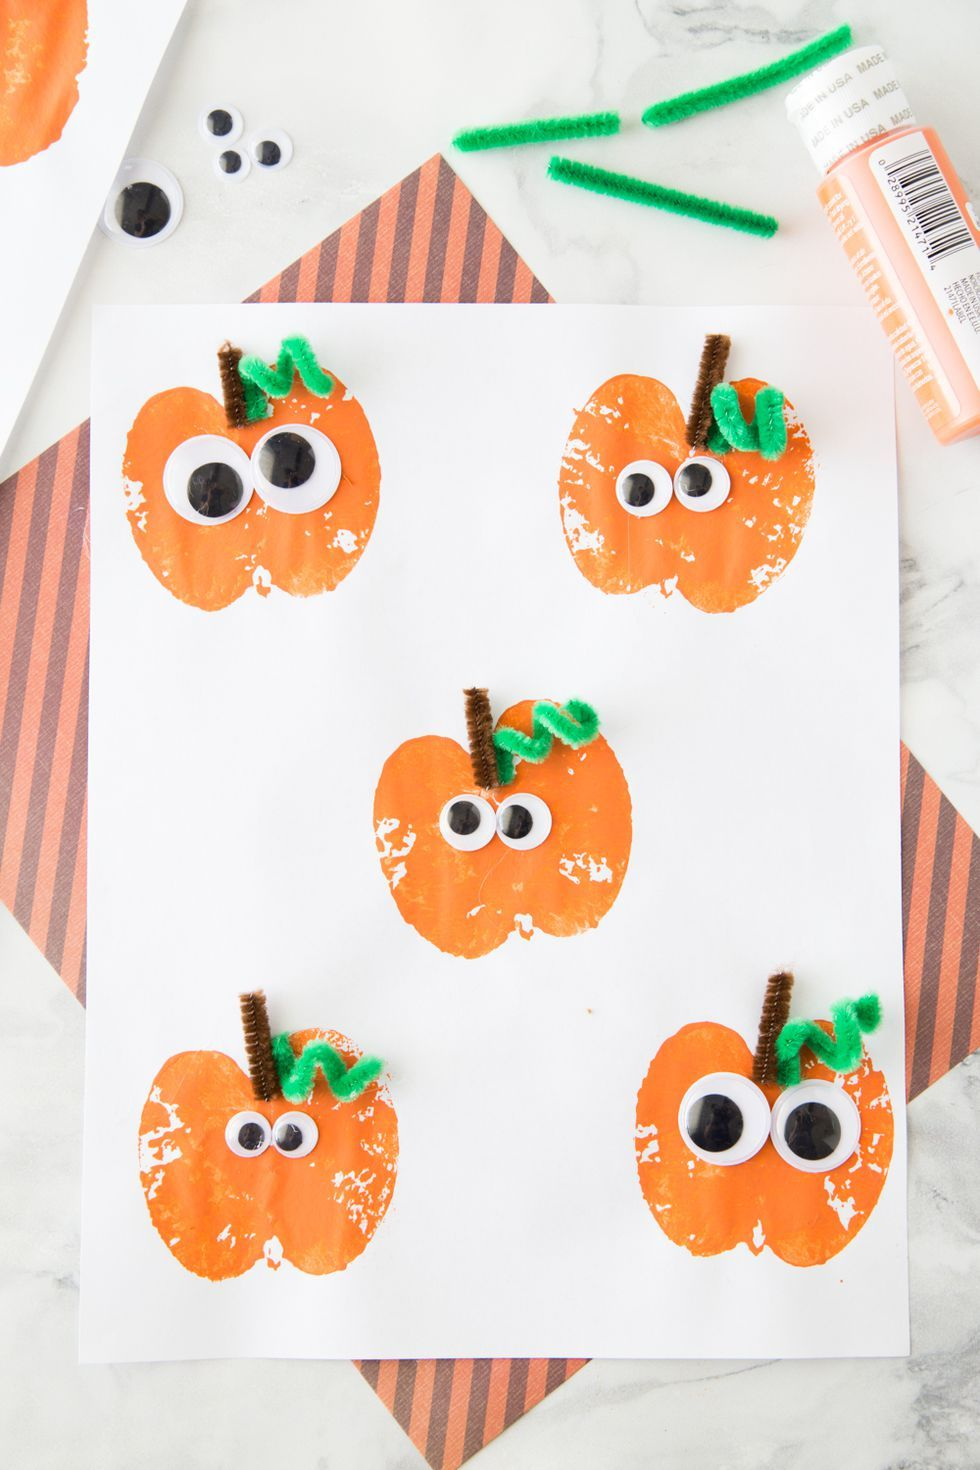 Halloween Crafts for kids, halloween crafts for kids preschool, halloween crafts diy, how to make halloween crafts diy